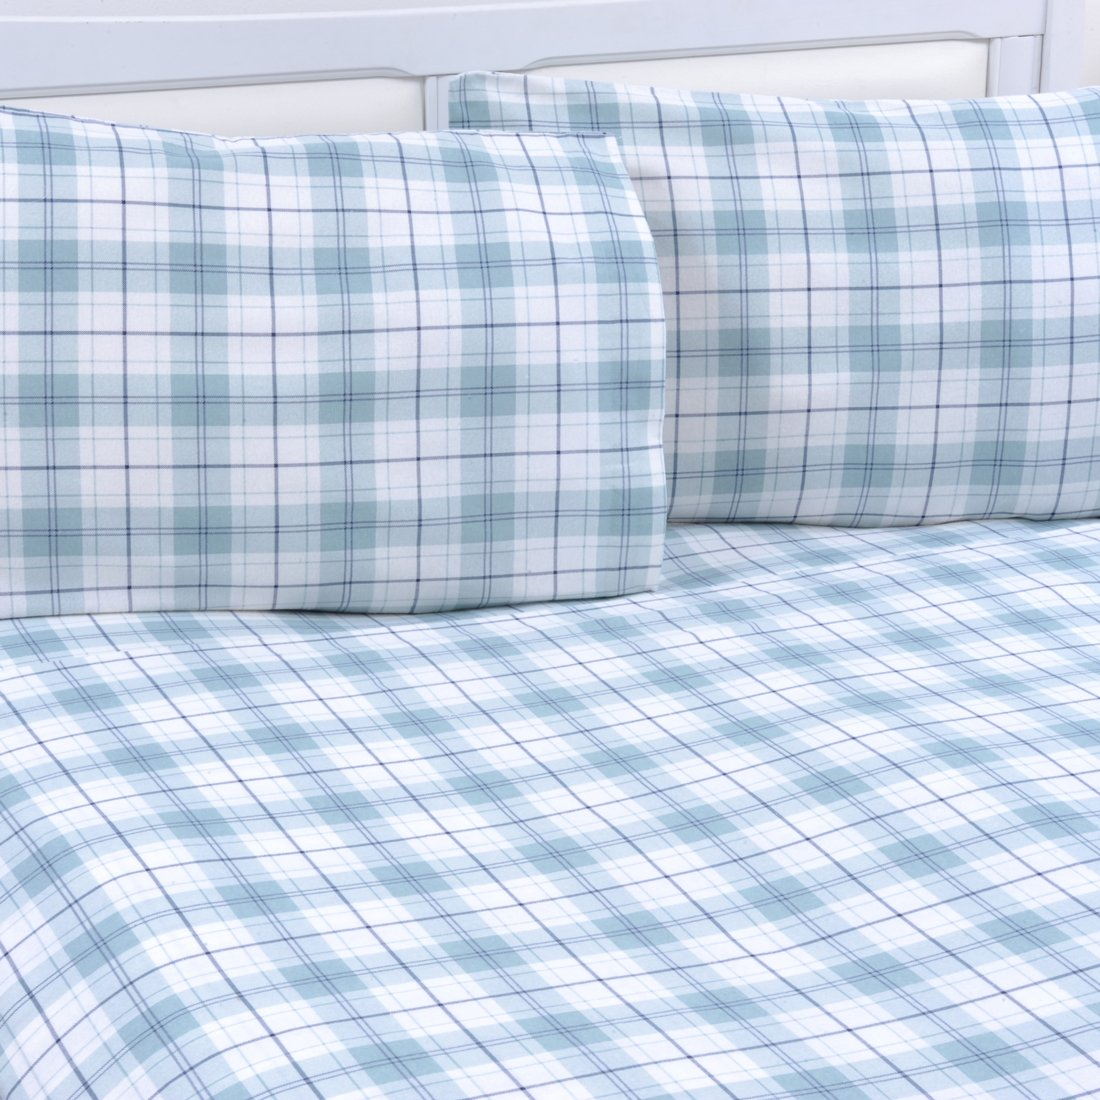 Mellanni 100% Cotton 3 Piece Printed Flannel Sheets Set - Deep Pocket - Warm - Super Soft - Breathable Bedding Plaid Blue